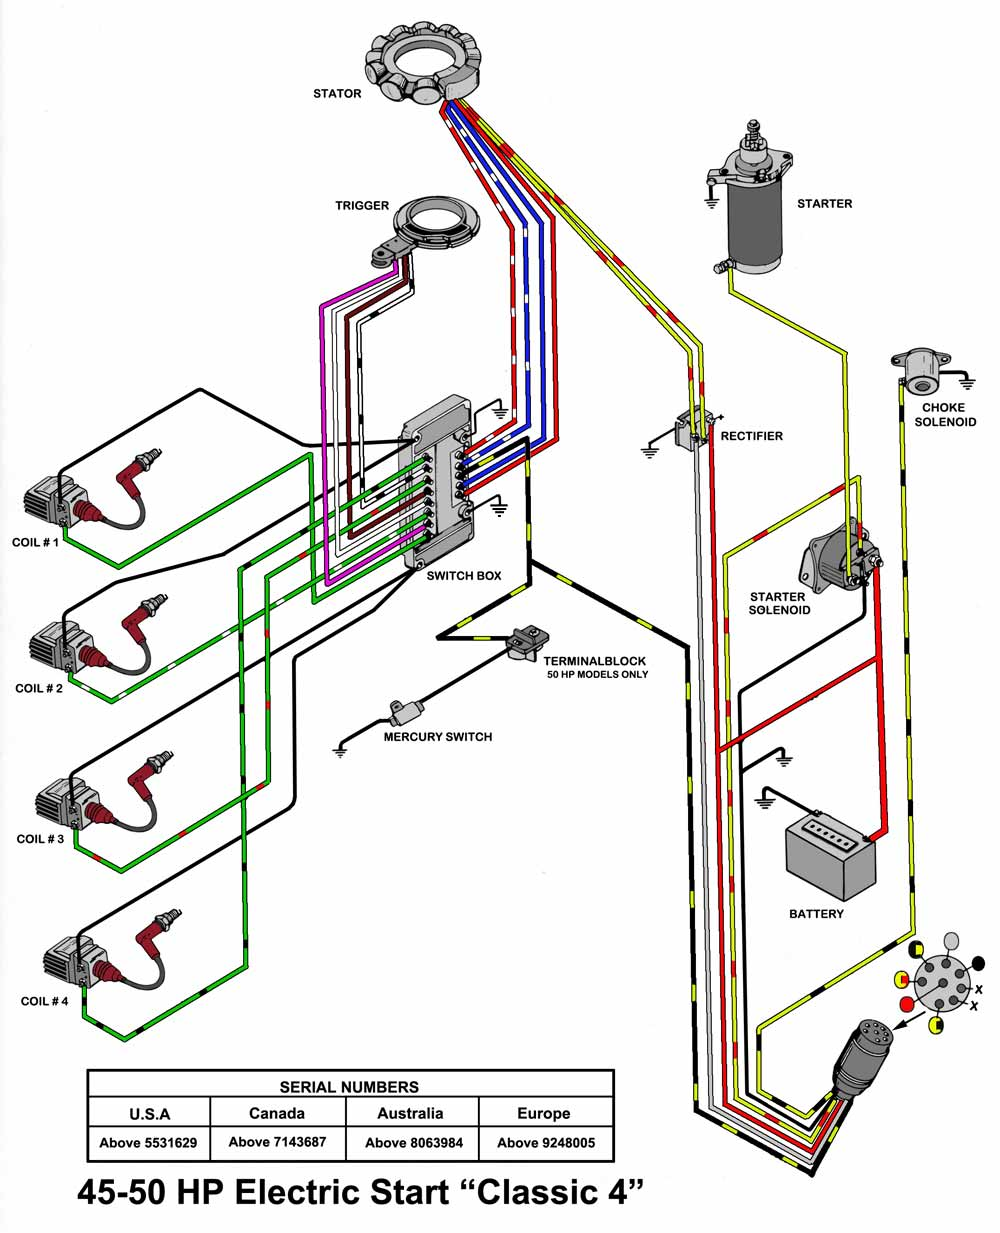 1985 mercury wiring diagram online schematic diagram u2022 rh holyoak co Mercury Outboard Control Wiring Diagram Mercury 115 Outboard Wiring Diagram 1994